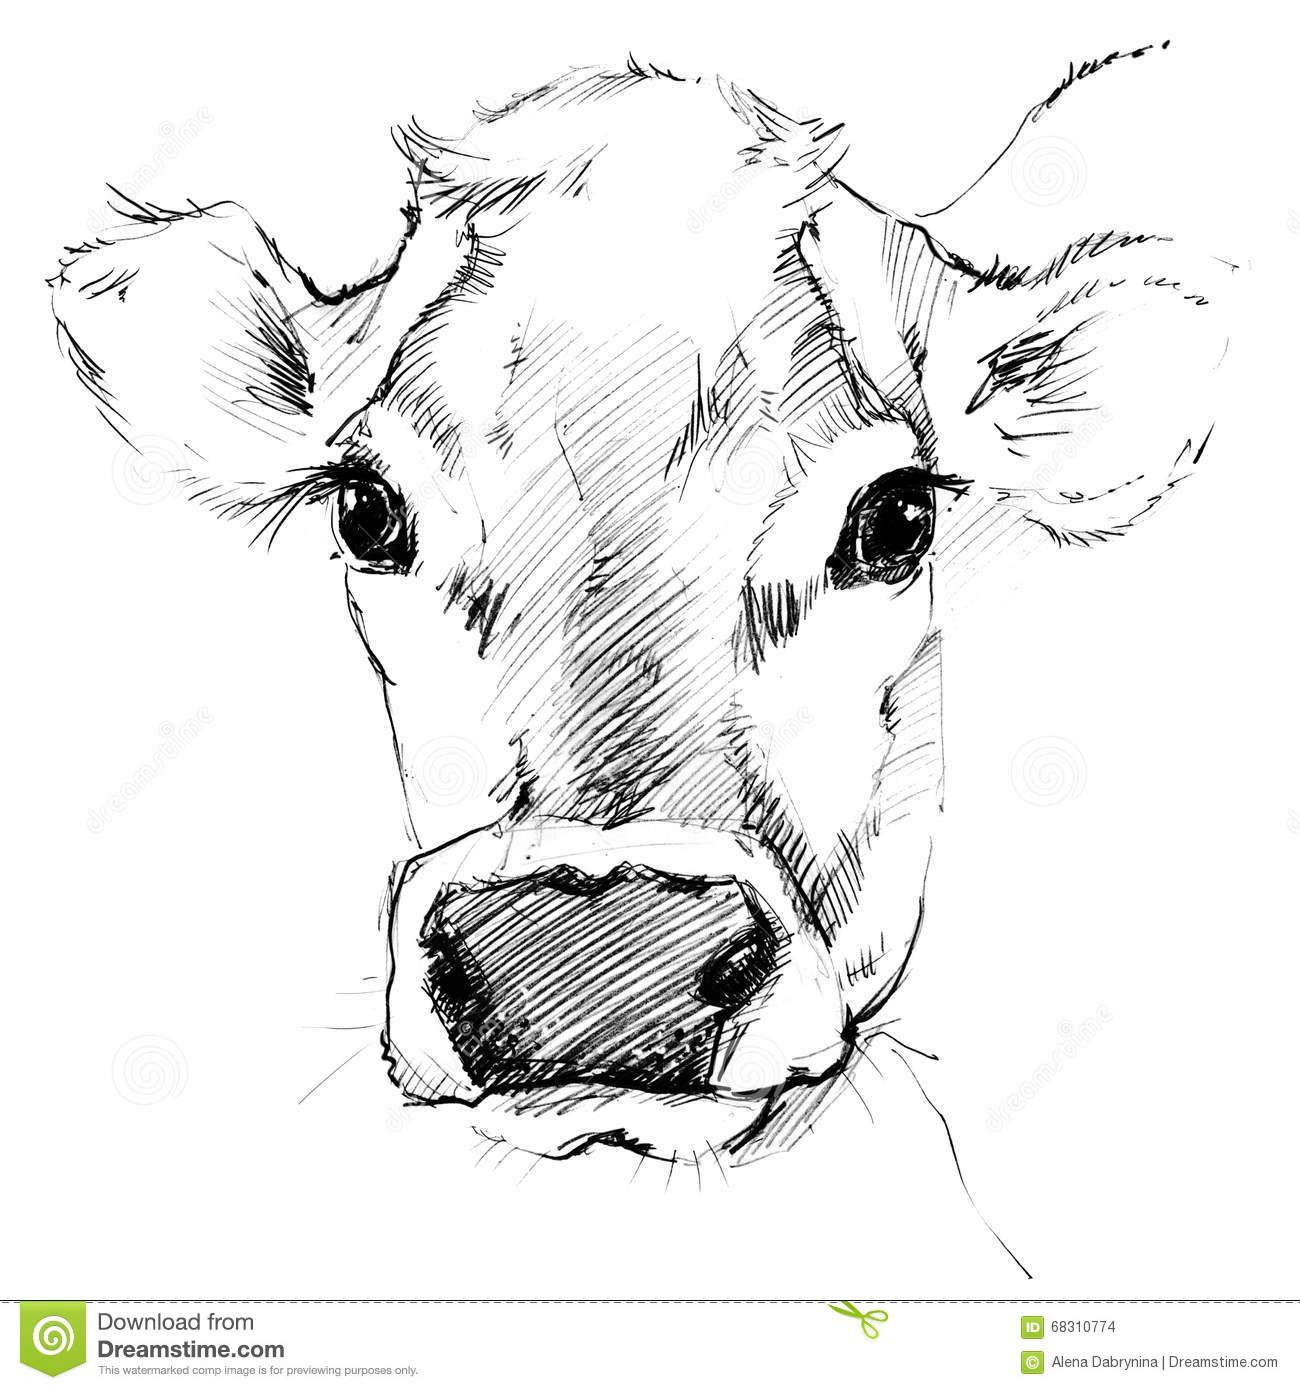 Cow pencil sketches pencil drawing of cow head royalty free stock